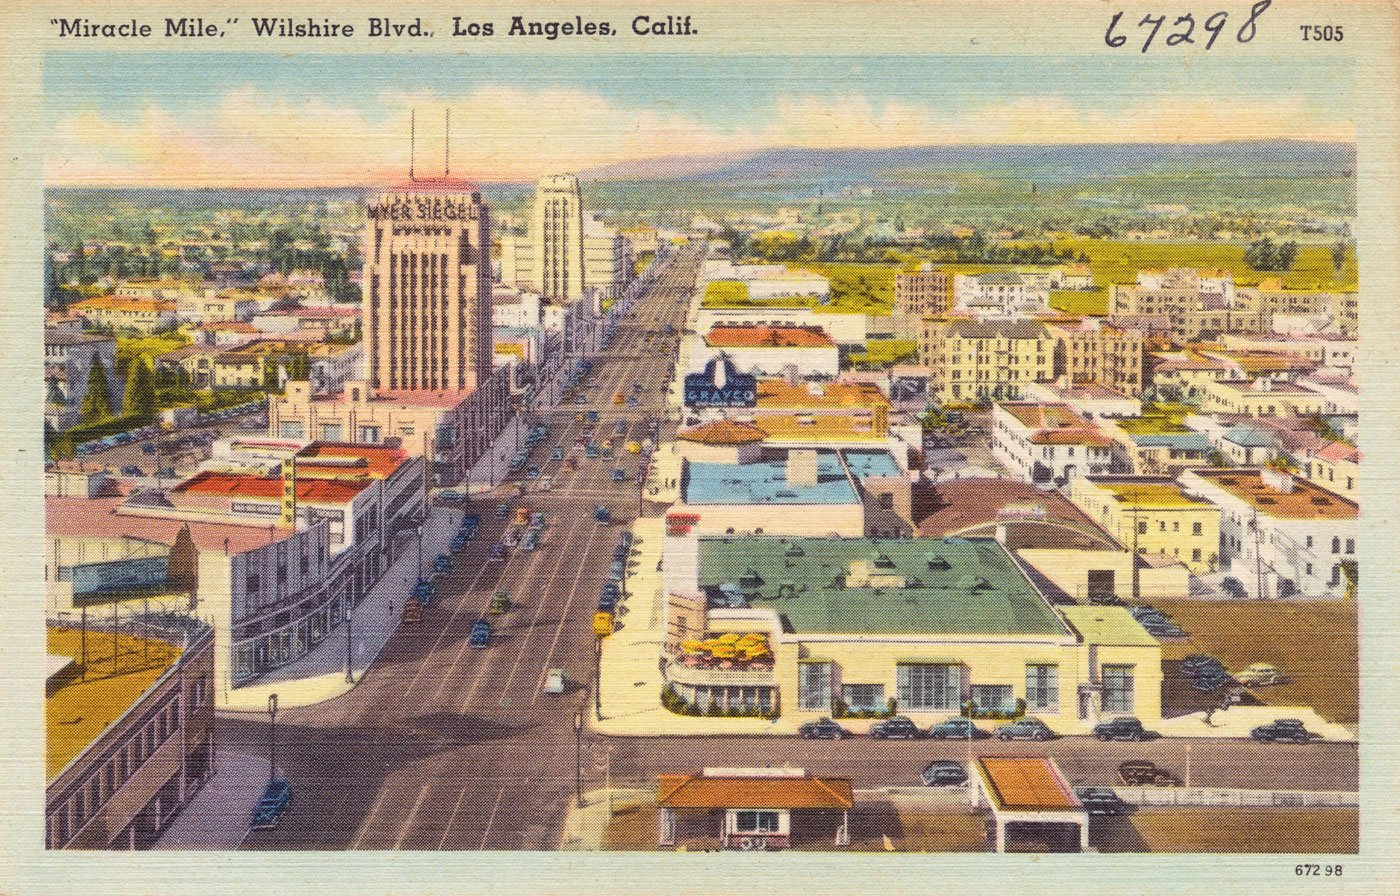 'Miracle Mile,' Wilshire Blvd., Los Angeles, Calif postcard